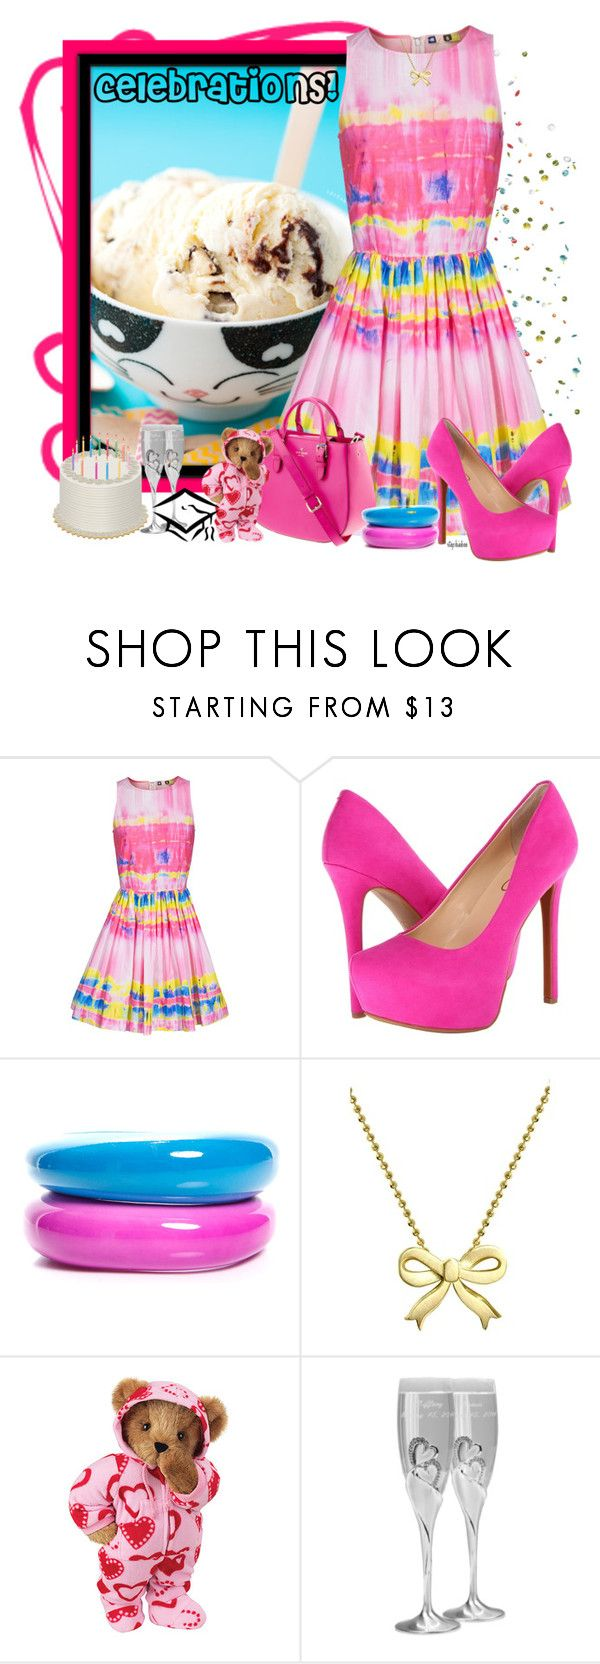 """Celebrate!"" by stephiebees ❤ liked on Polyvore featuring Lara, MSGM, Jessica Simpson, Kate Spade, Boohoo, Alex Woo and Hortense B. Hewitt"